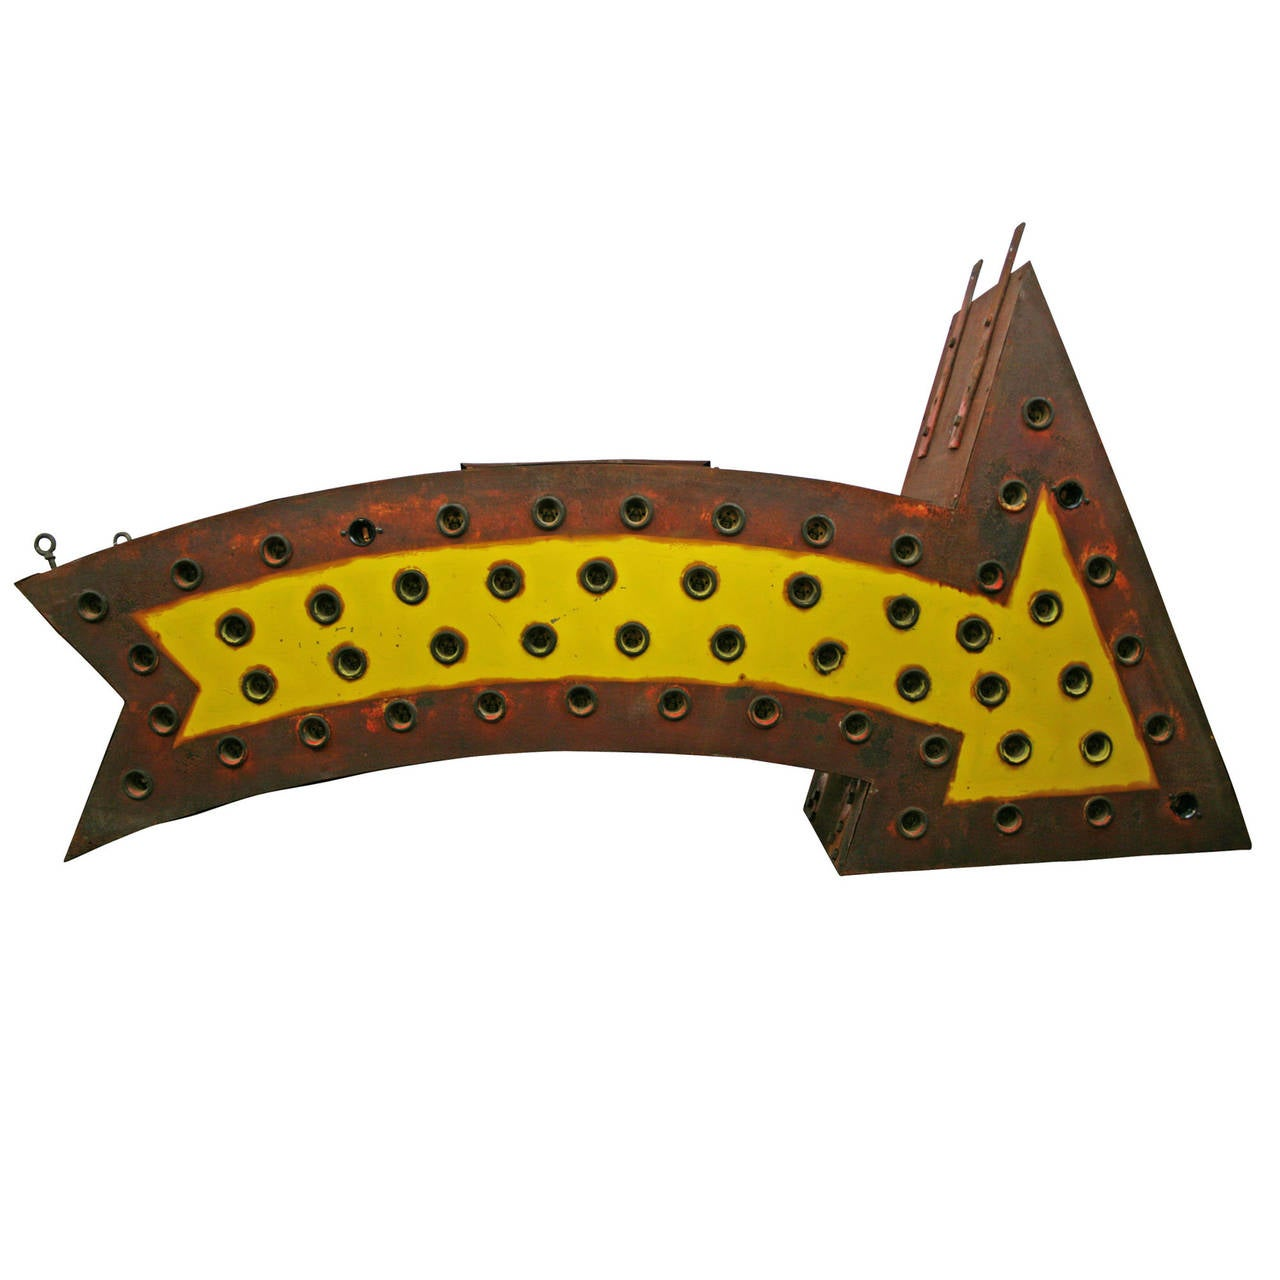 Perfectly Aged Lighted Carnival Arrow, circa 1950 3